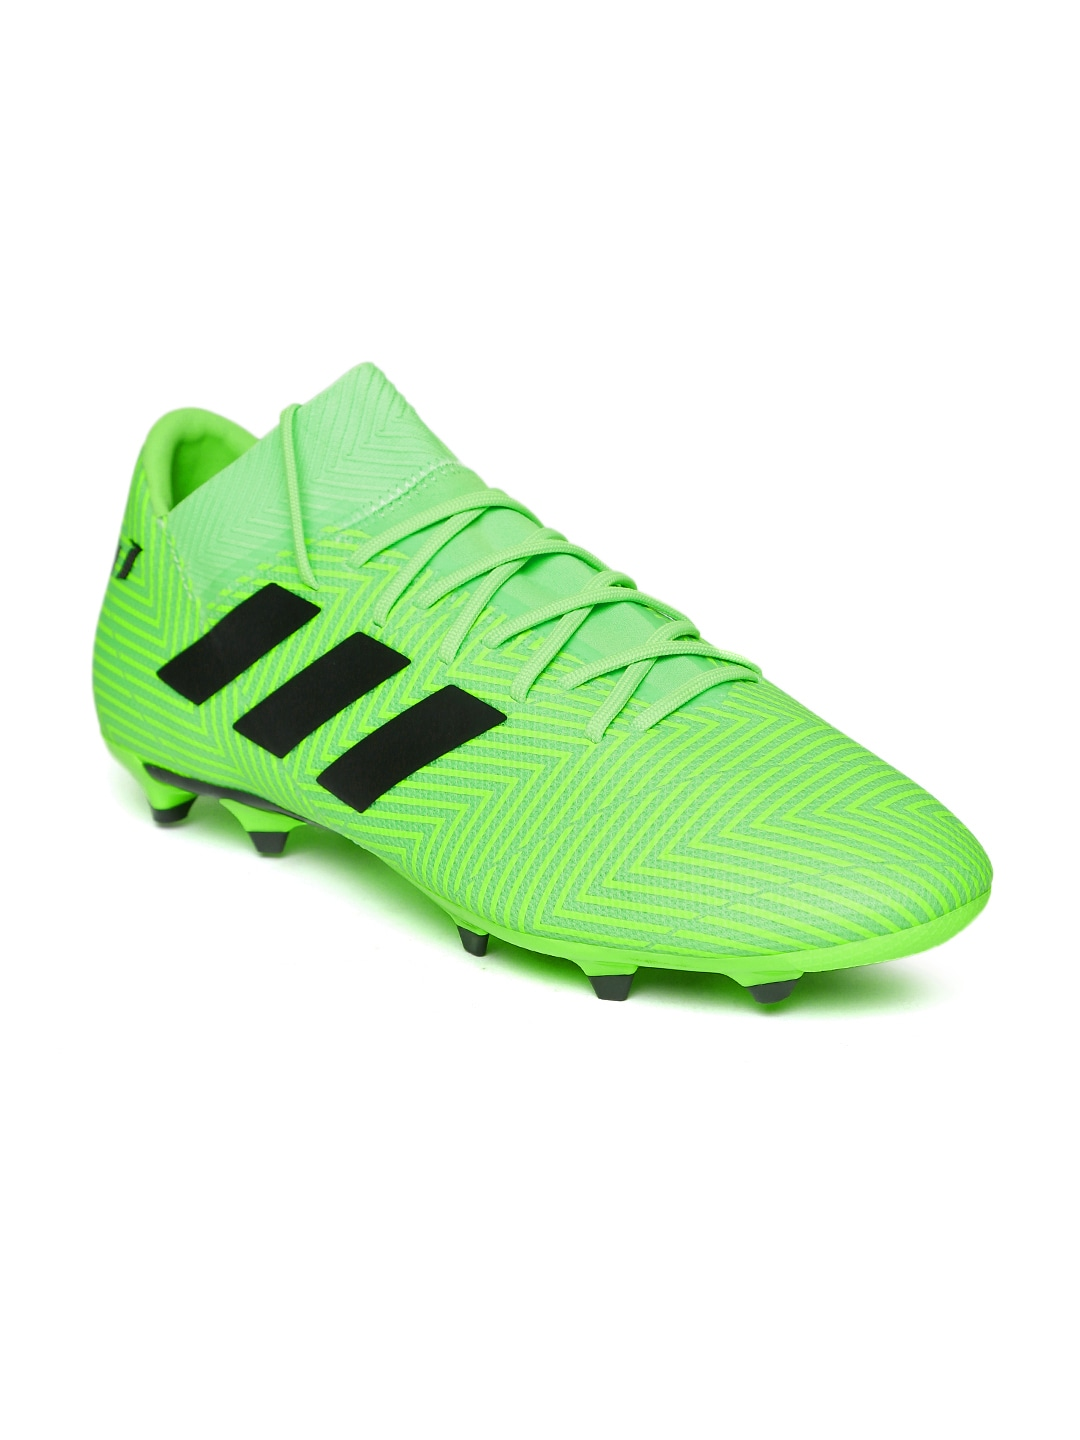 8386d2e412 Adidas Messi - Buy Adidas Messi online in India